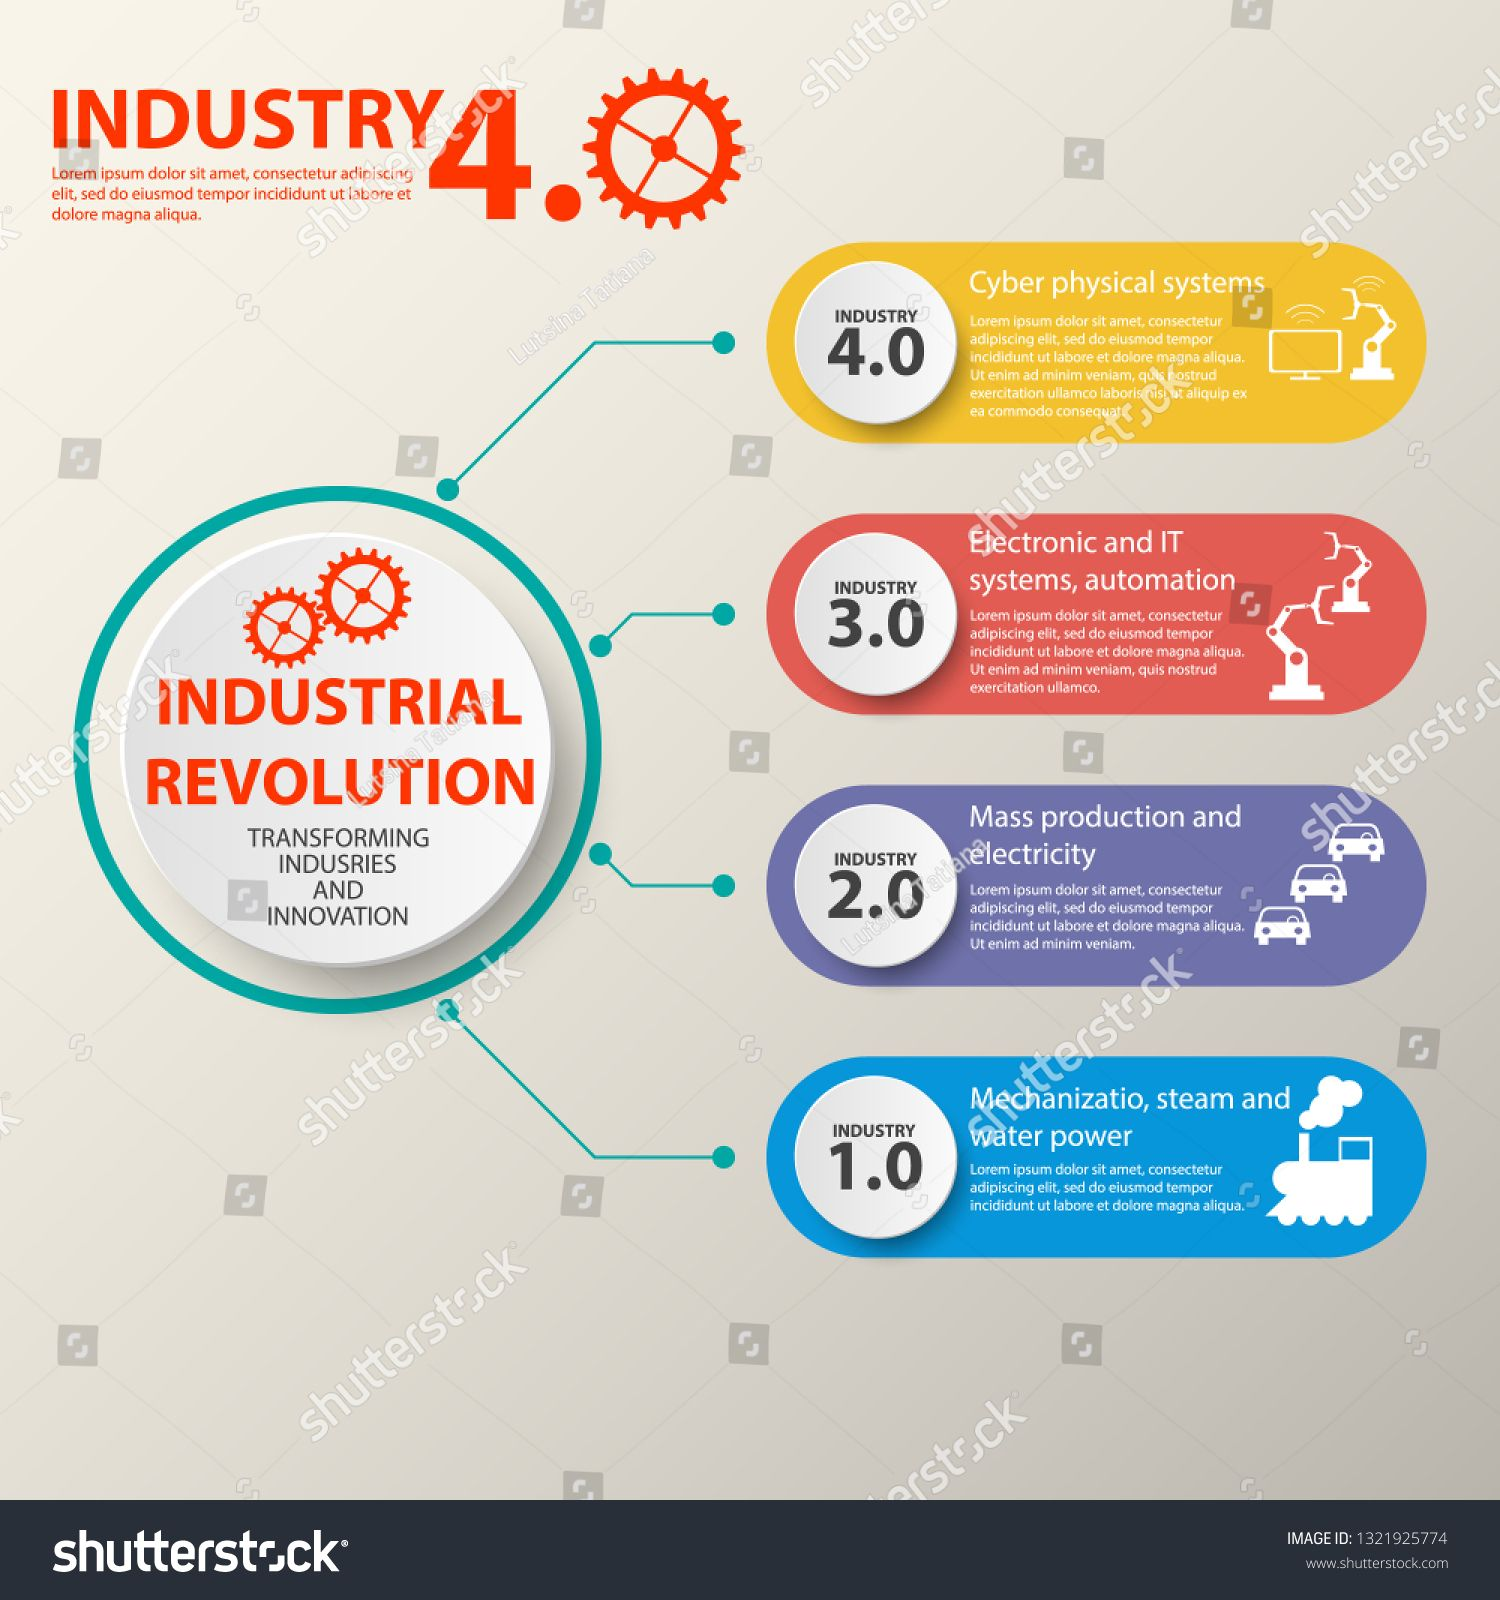 Physical Systems Cloud Computing Cognitive Computing Industry 4 0 Infographic Industry 4 0 Cyber Physical Systems Concept I Revolusi Industri Brosur Belajar